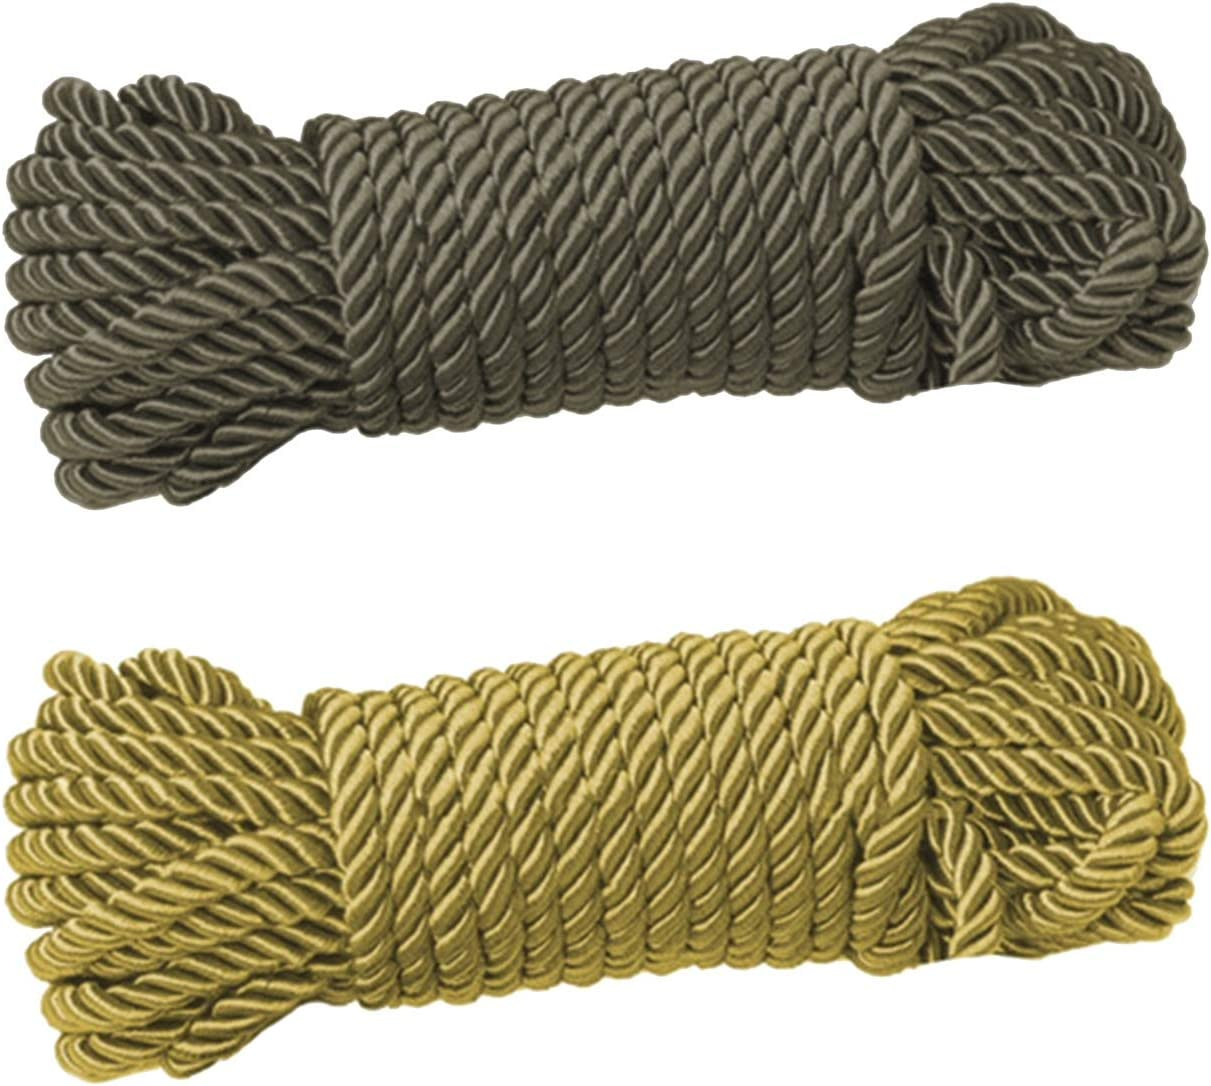 2 Pack Soft Max 60% OFF Max 45% OFF Silk Rope Solid Durable Ropes an 10m Twisted Braided